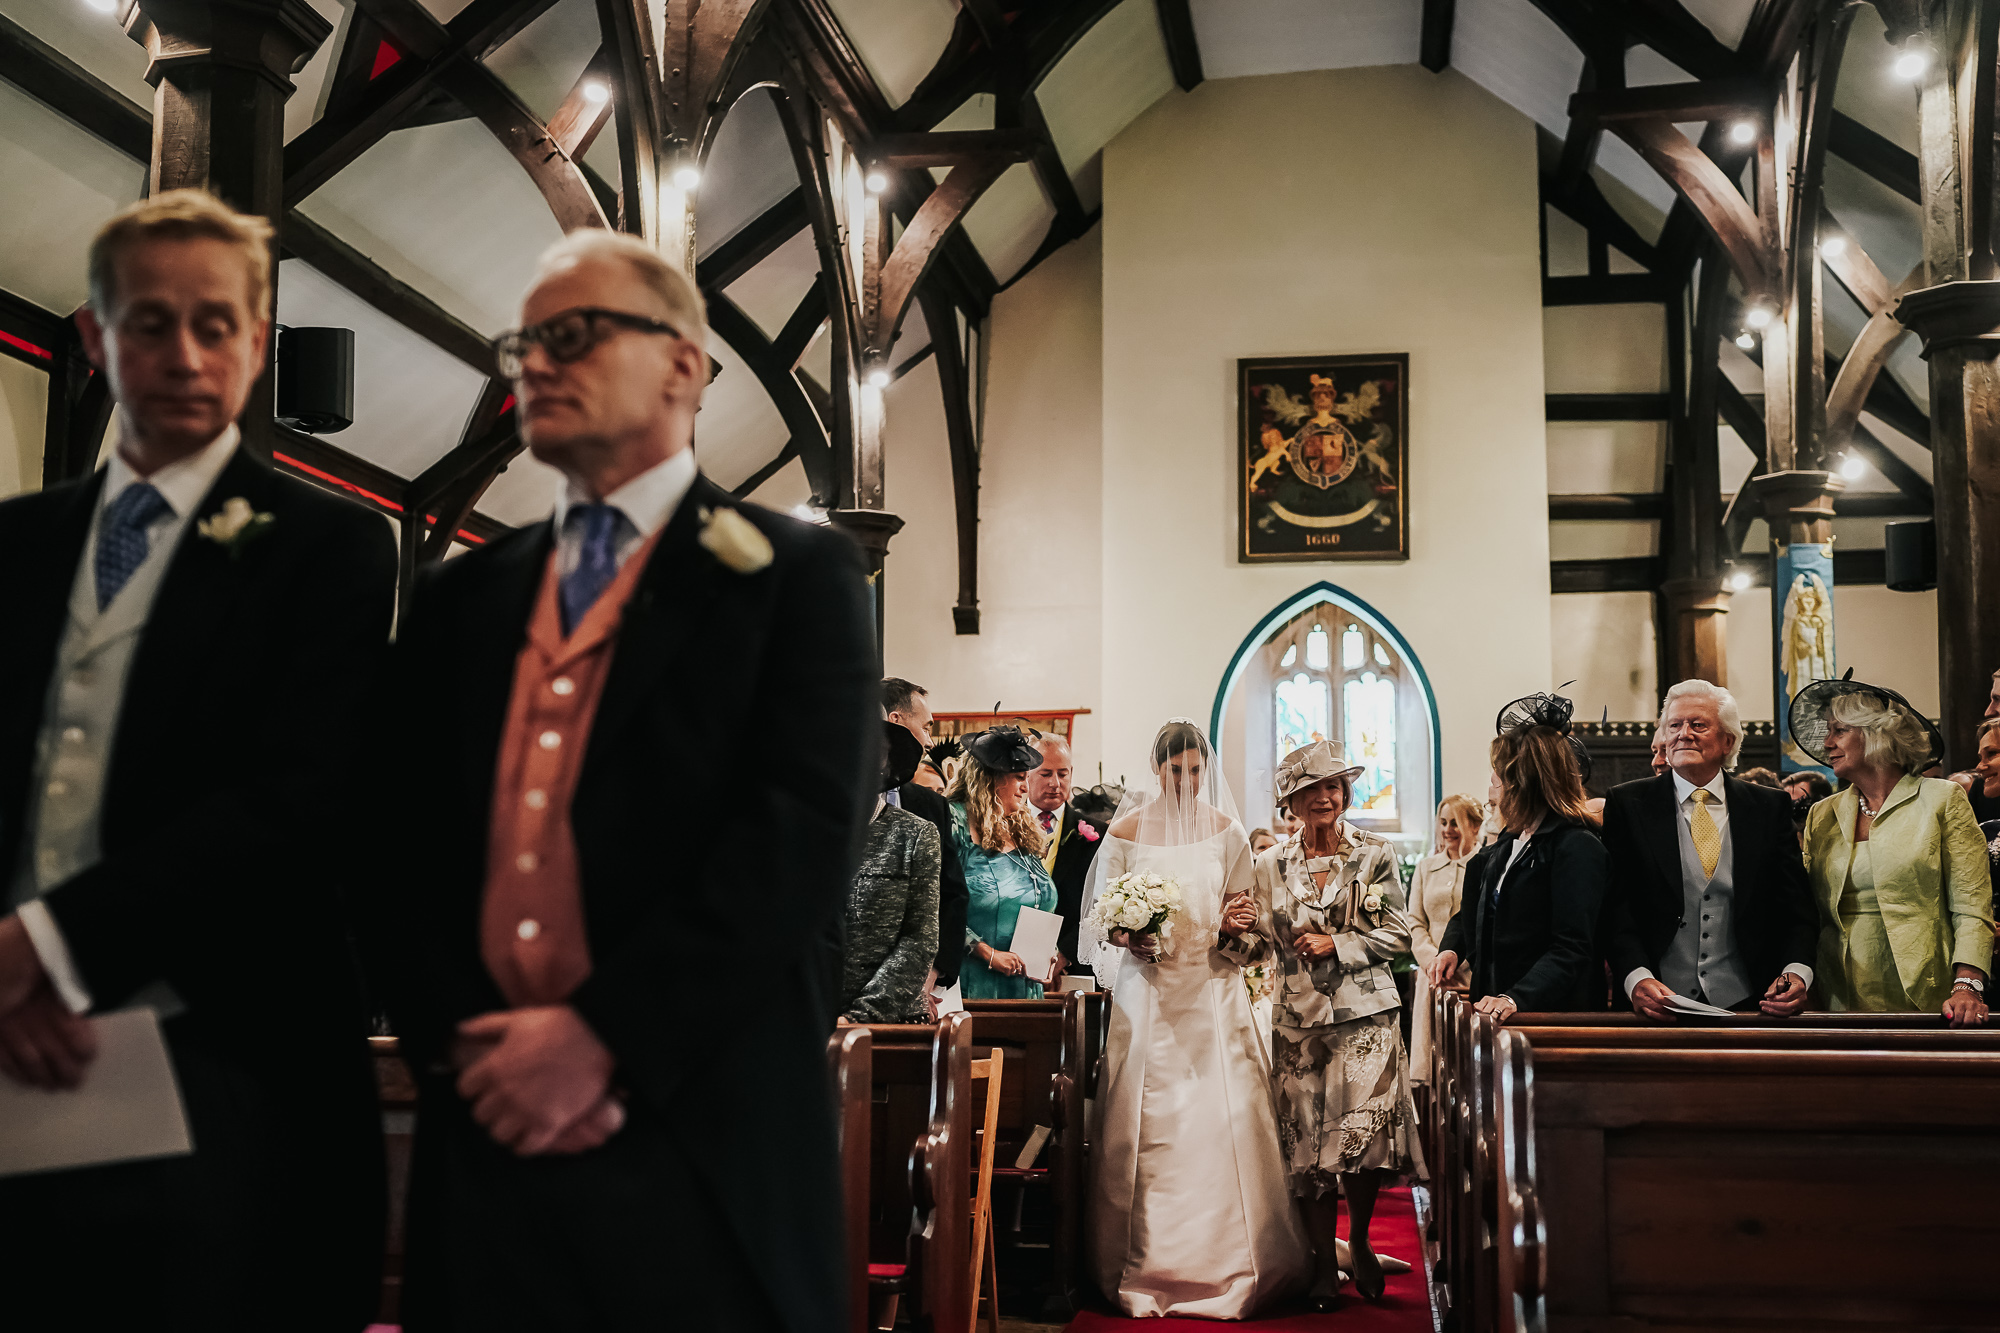 Cheshire wedding at home wedding photography (17 of 49).jpg